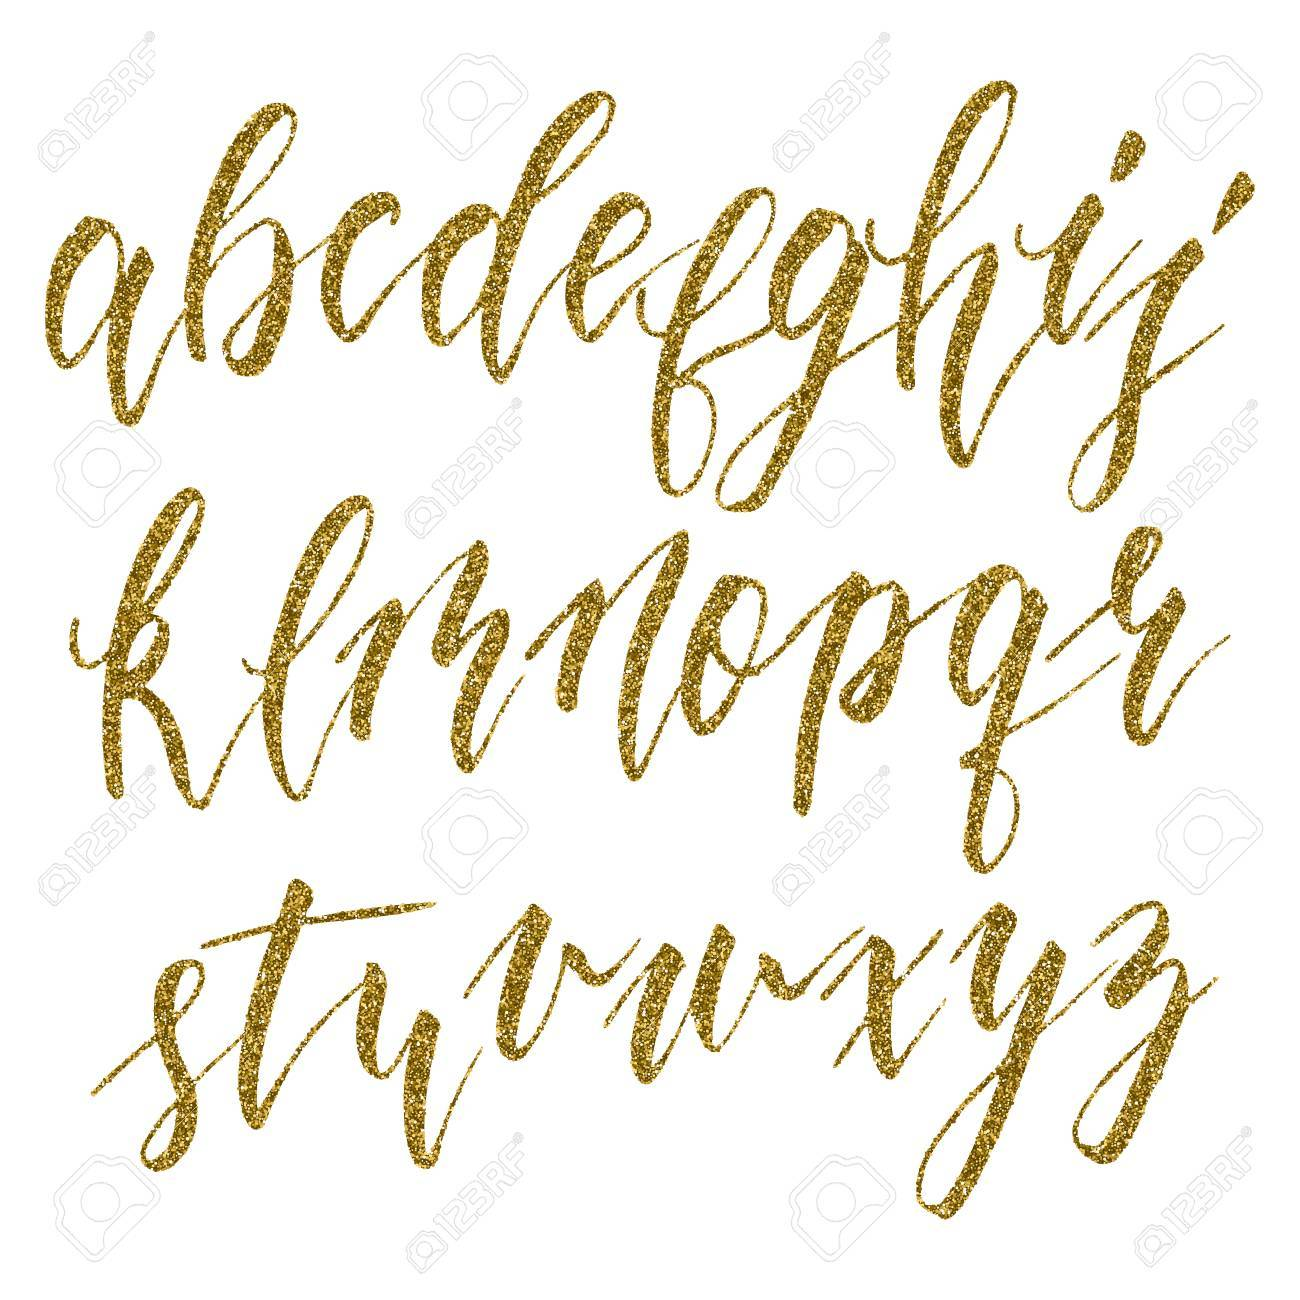 Hand Drawn English Calligraphic Alphabet With Gold Glitter Texture Each Letter Isolated On A White